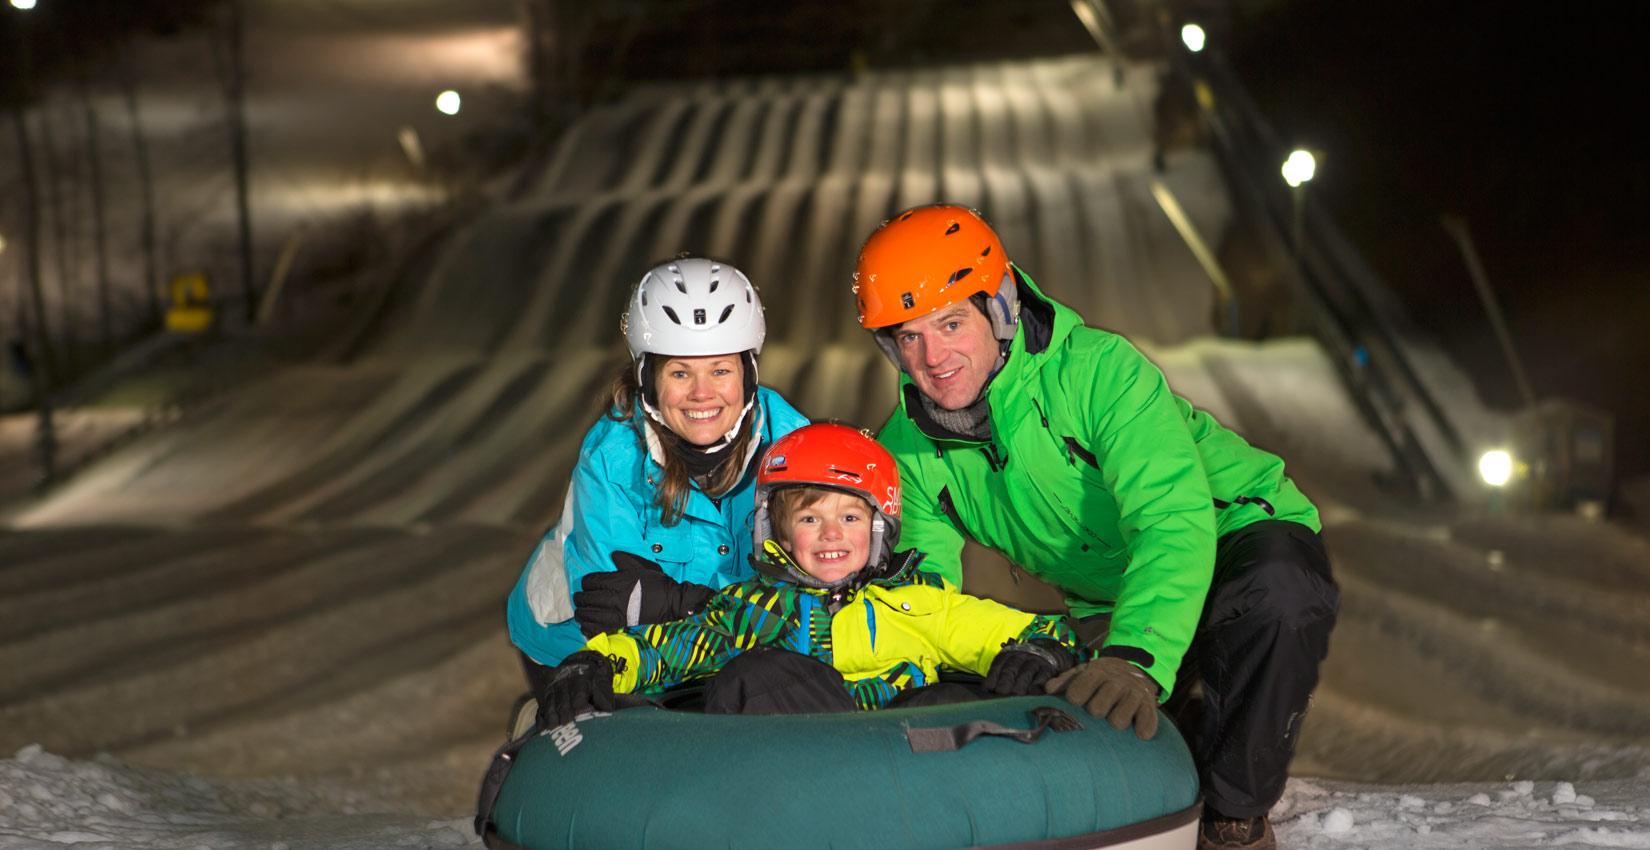 Blue Ridge Mountain Family Snow Tubing at Wintergreen Resort